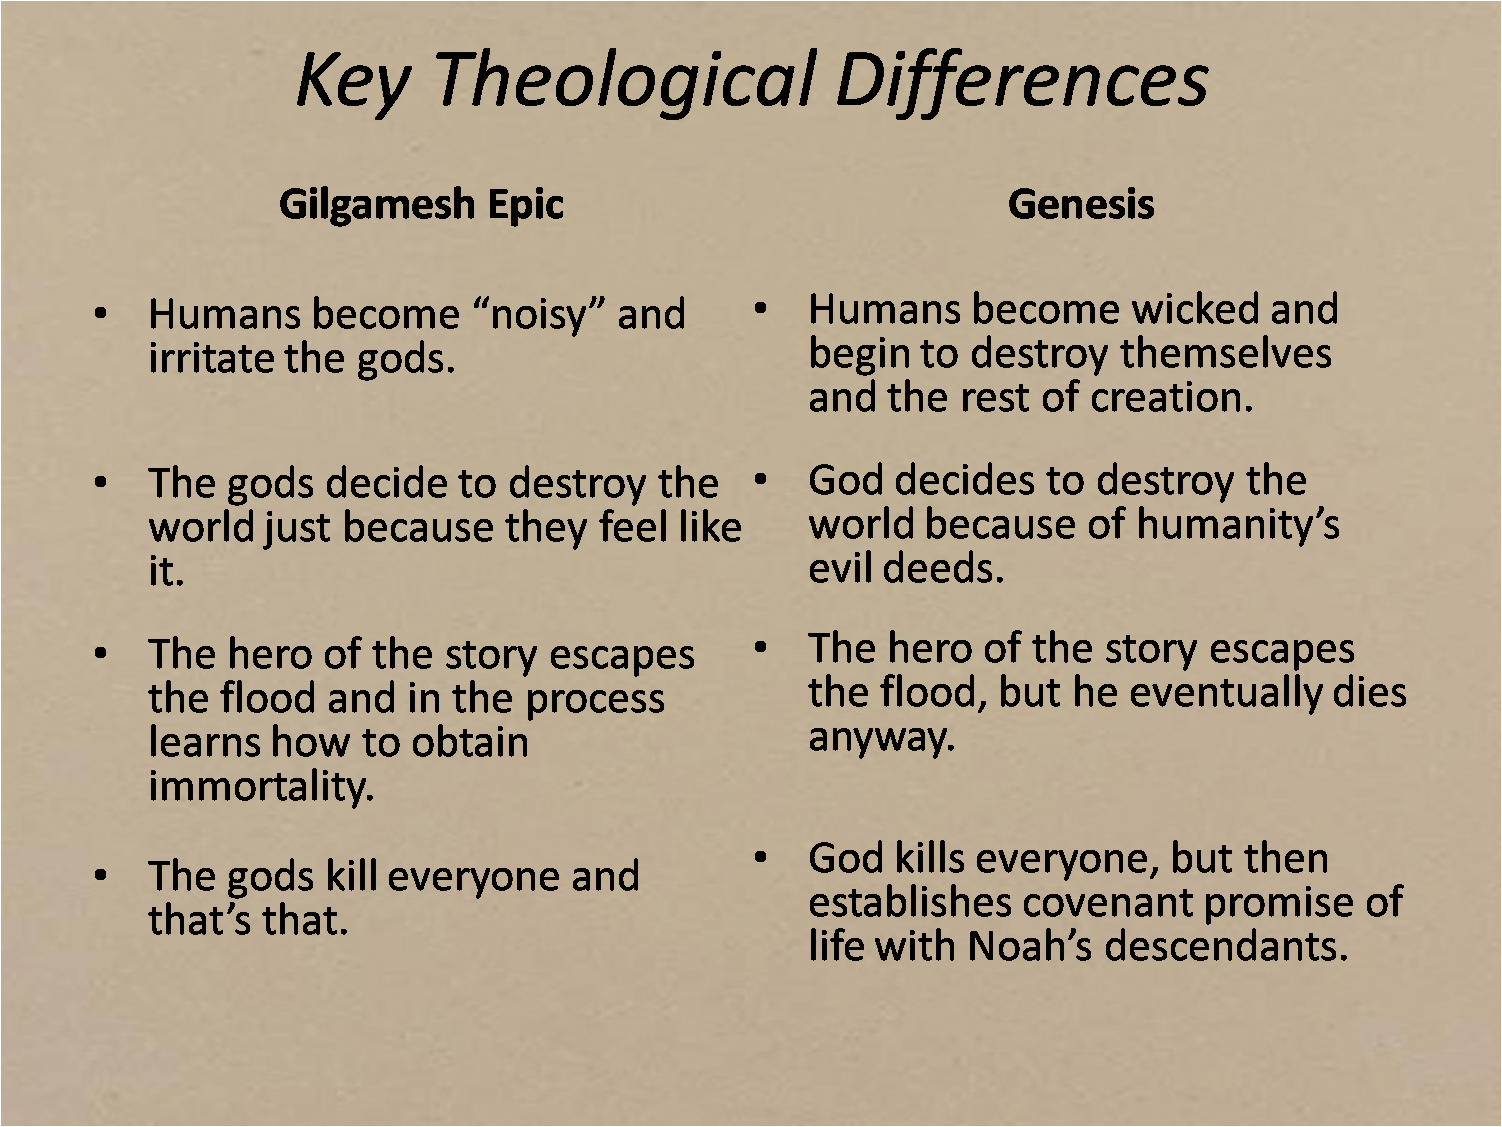 gilgamesh vs the genesis Comparing the flood stories in the gilgamesh epic and genesis, one is impressed with the numerous similarities between the two accounts.